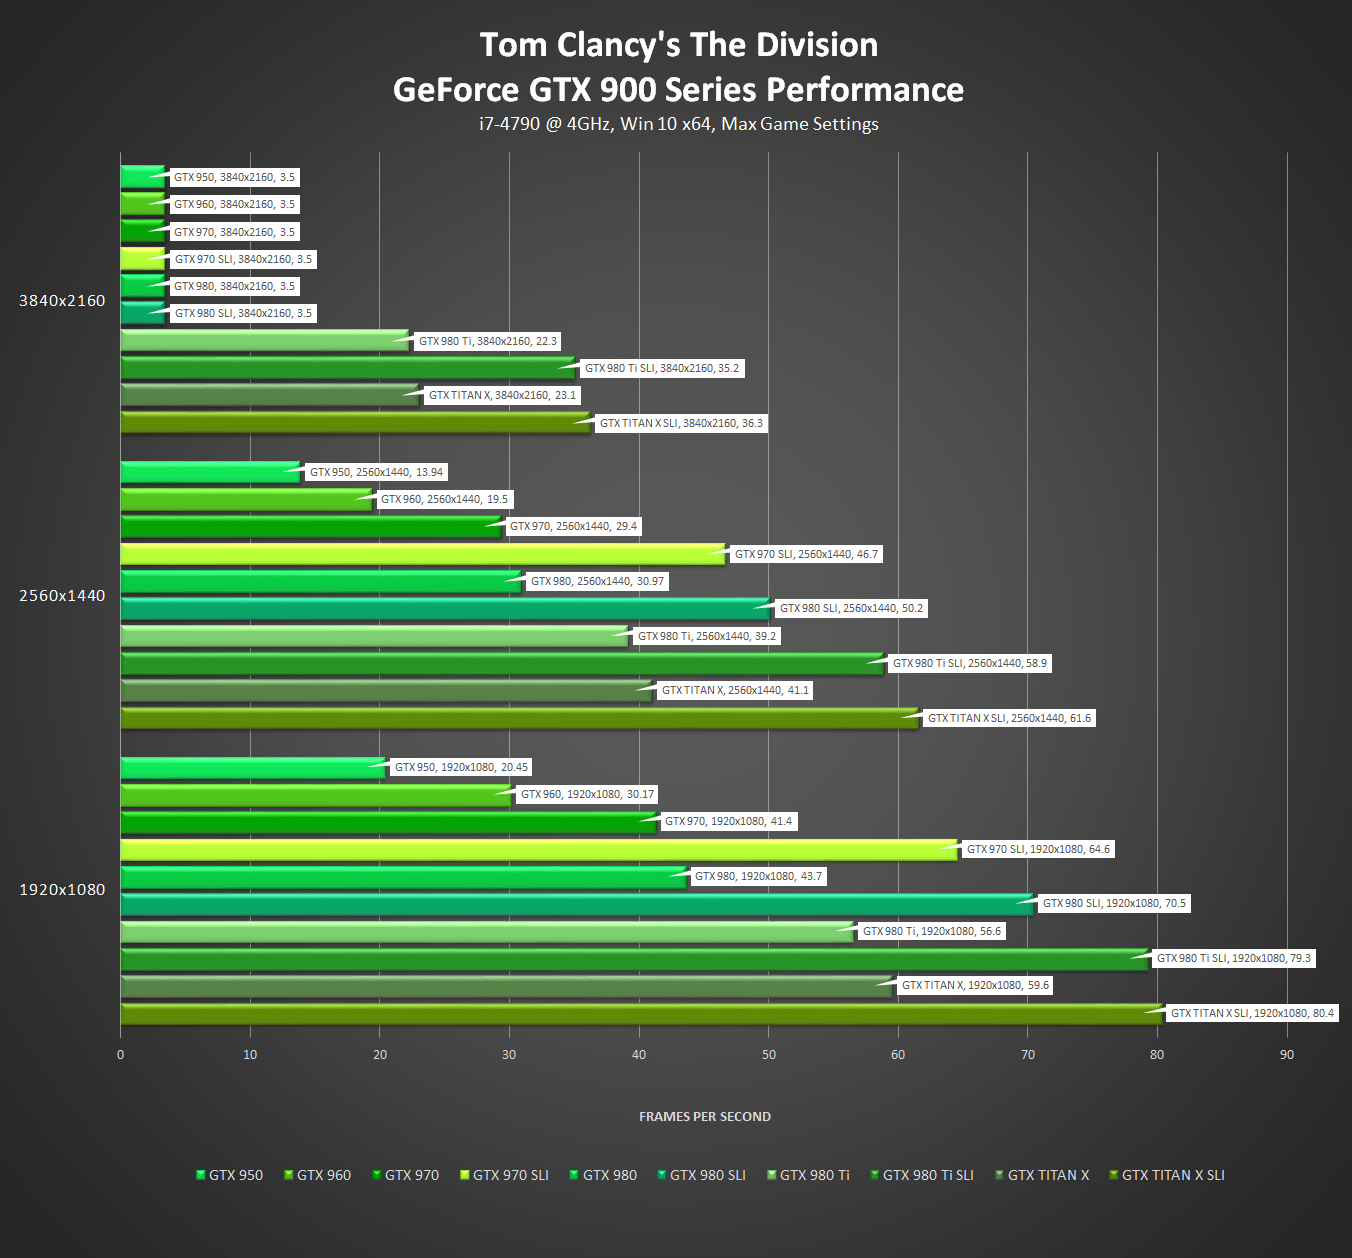 tom-clancys-the-division-nvidia-geforce-gtx-900-series-performance